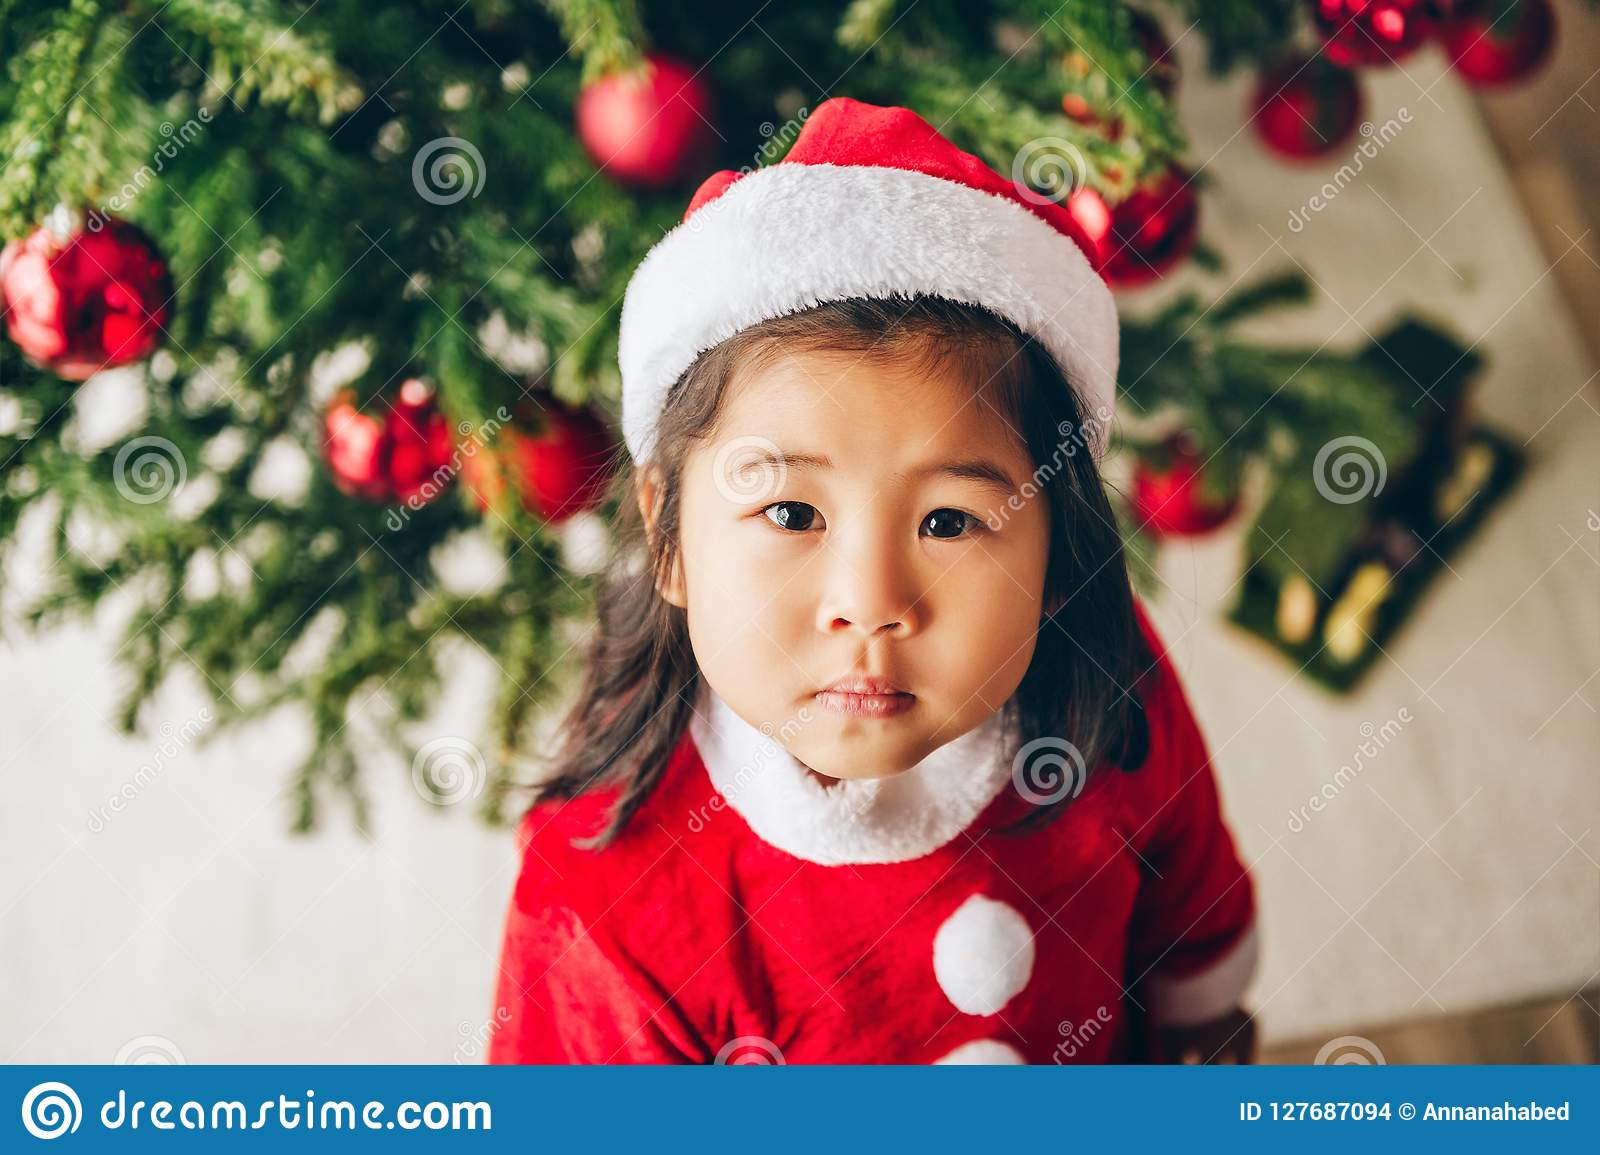 Christmas portrait of adorable 3 year old asian toddler girl wearing red Santa dress and hat